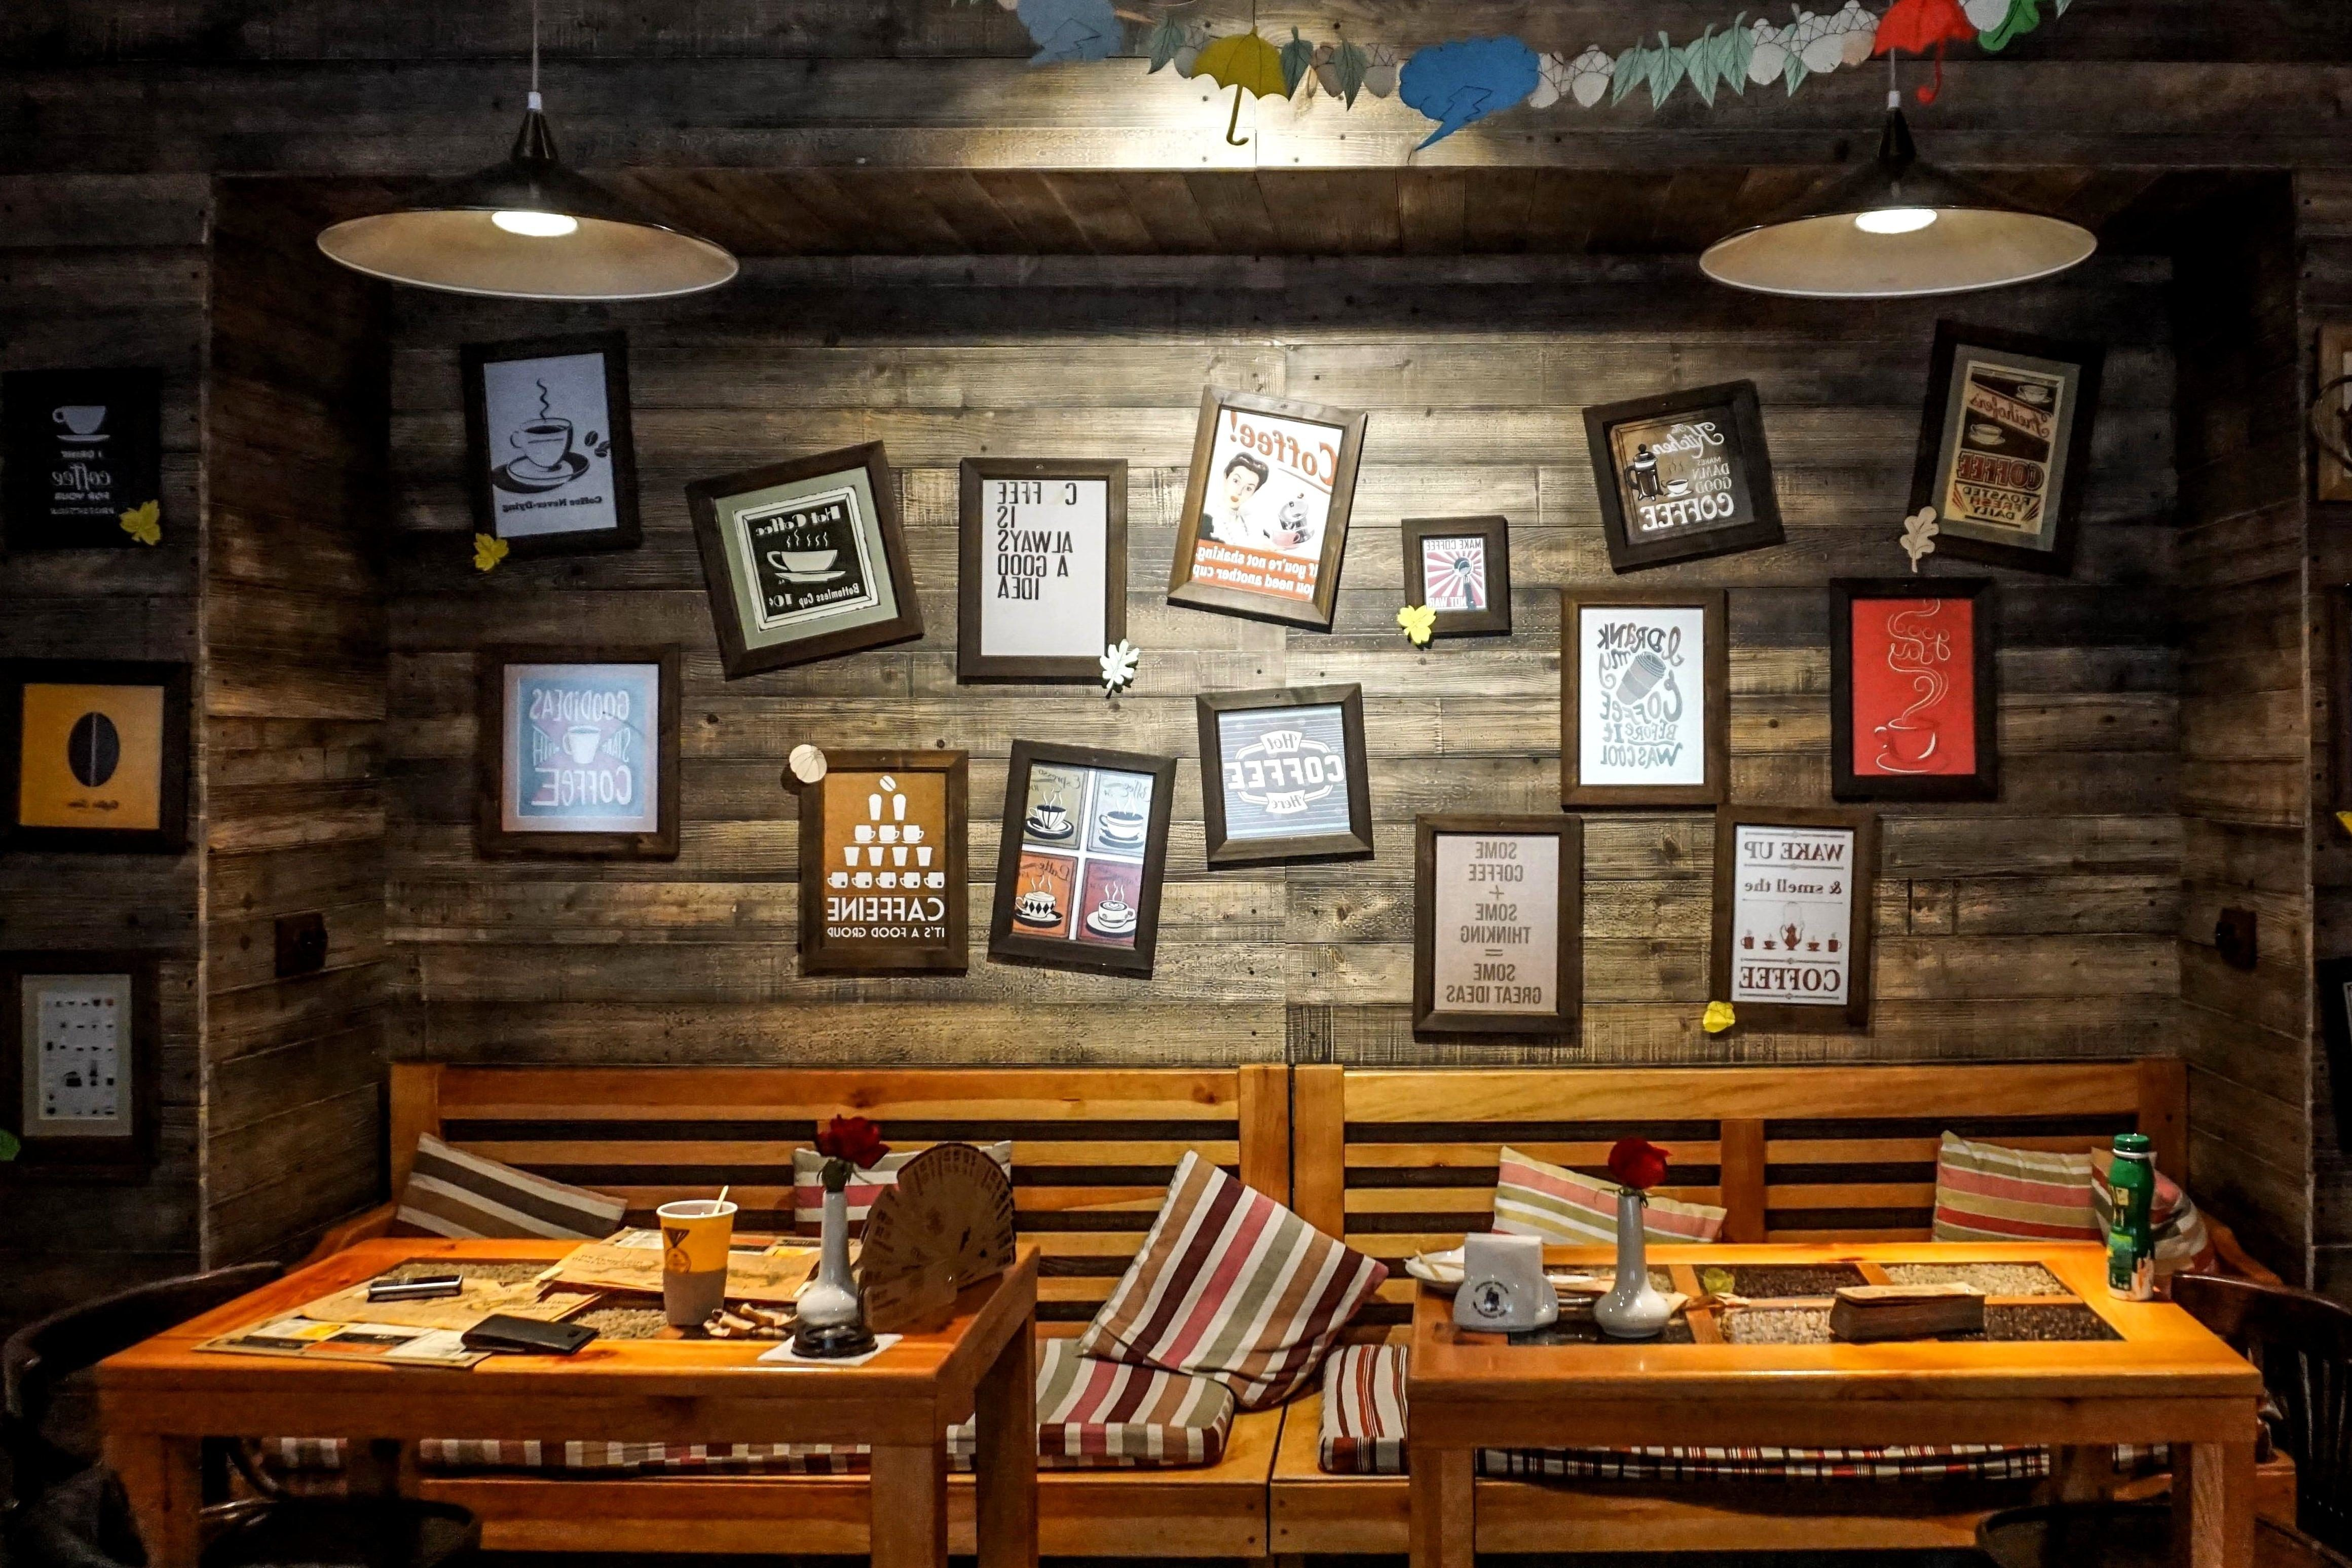 high desk chair cheap bean bag free picture: picture, wall, decoration, restaurant, interior